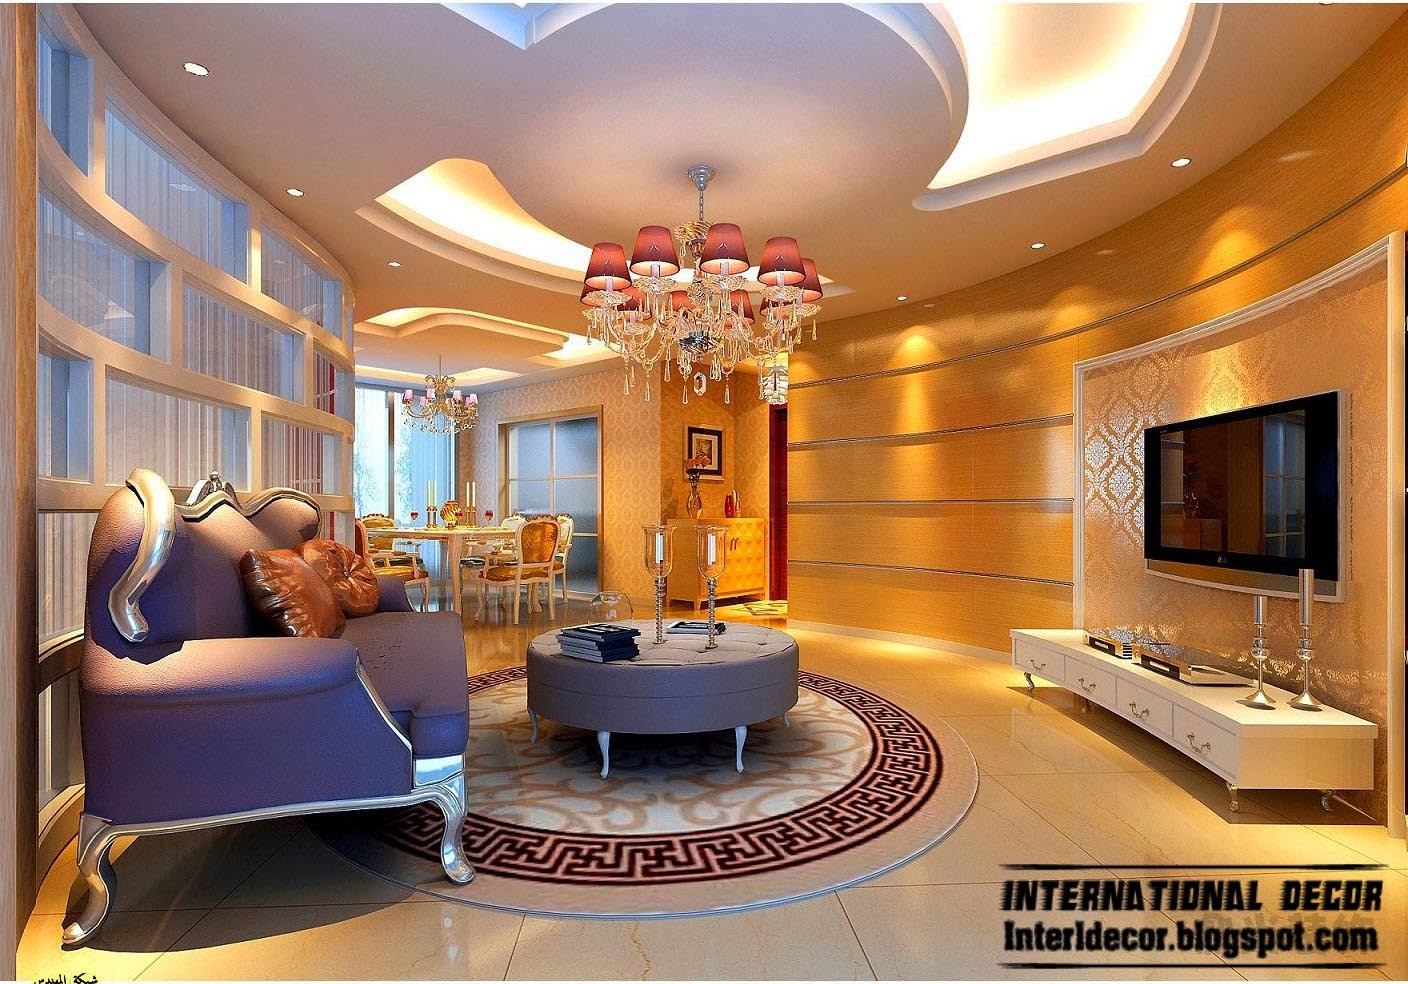 Suspended ceiling pop designs for living room 2015 for Modern living room design ideas 2015